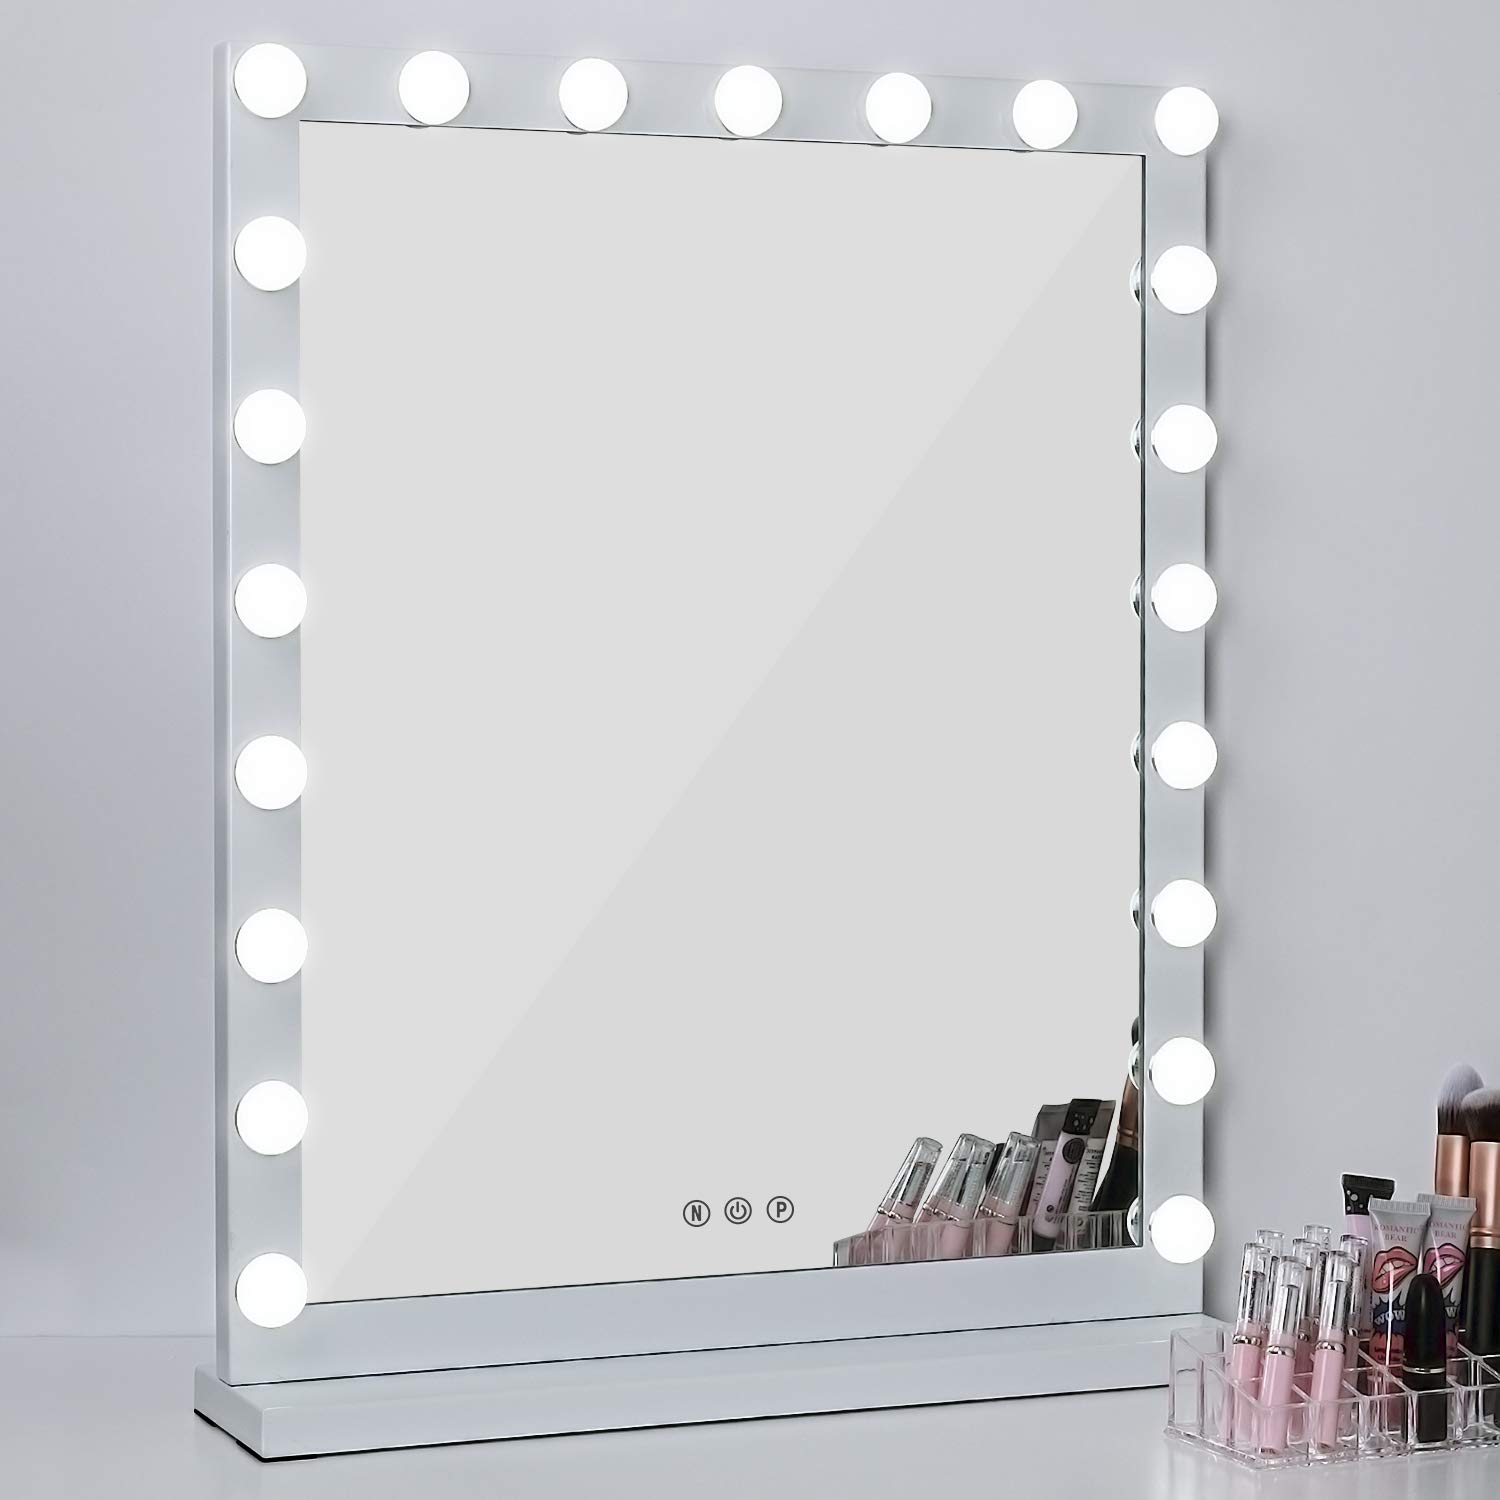 MRah Lighted Makeup Vanity Mirror, 3 Color Modes Tabletops Lighted Mirror LED Illuminated Cosmetic Mirror with 21 LED Dimmable Bulbs (25'' x 20'') by MRah